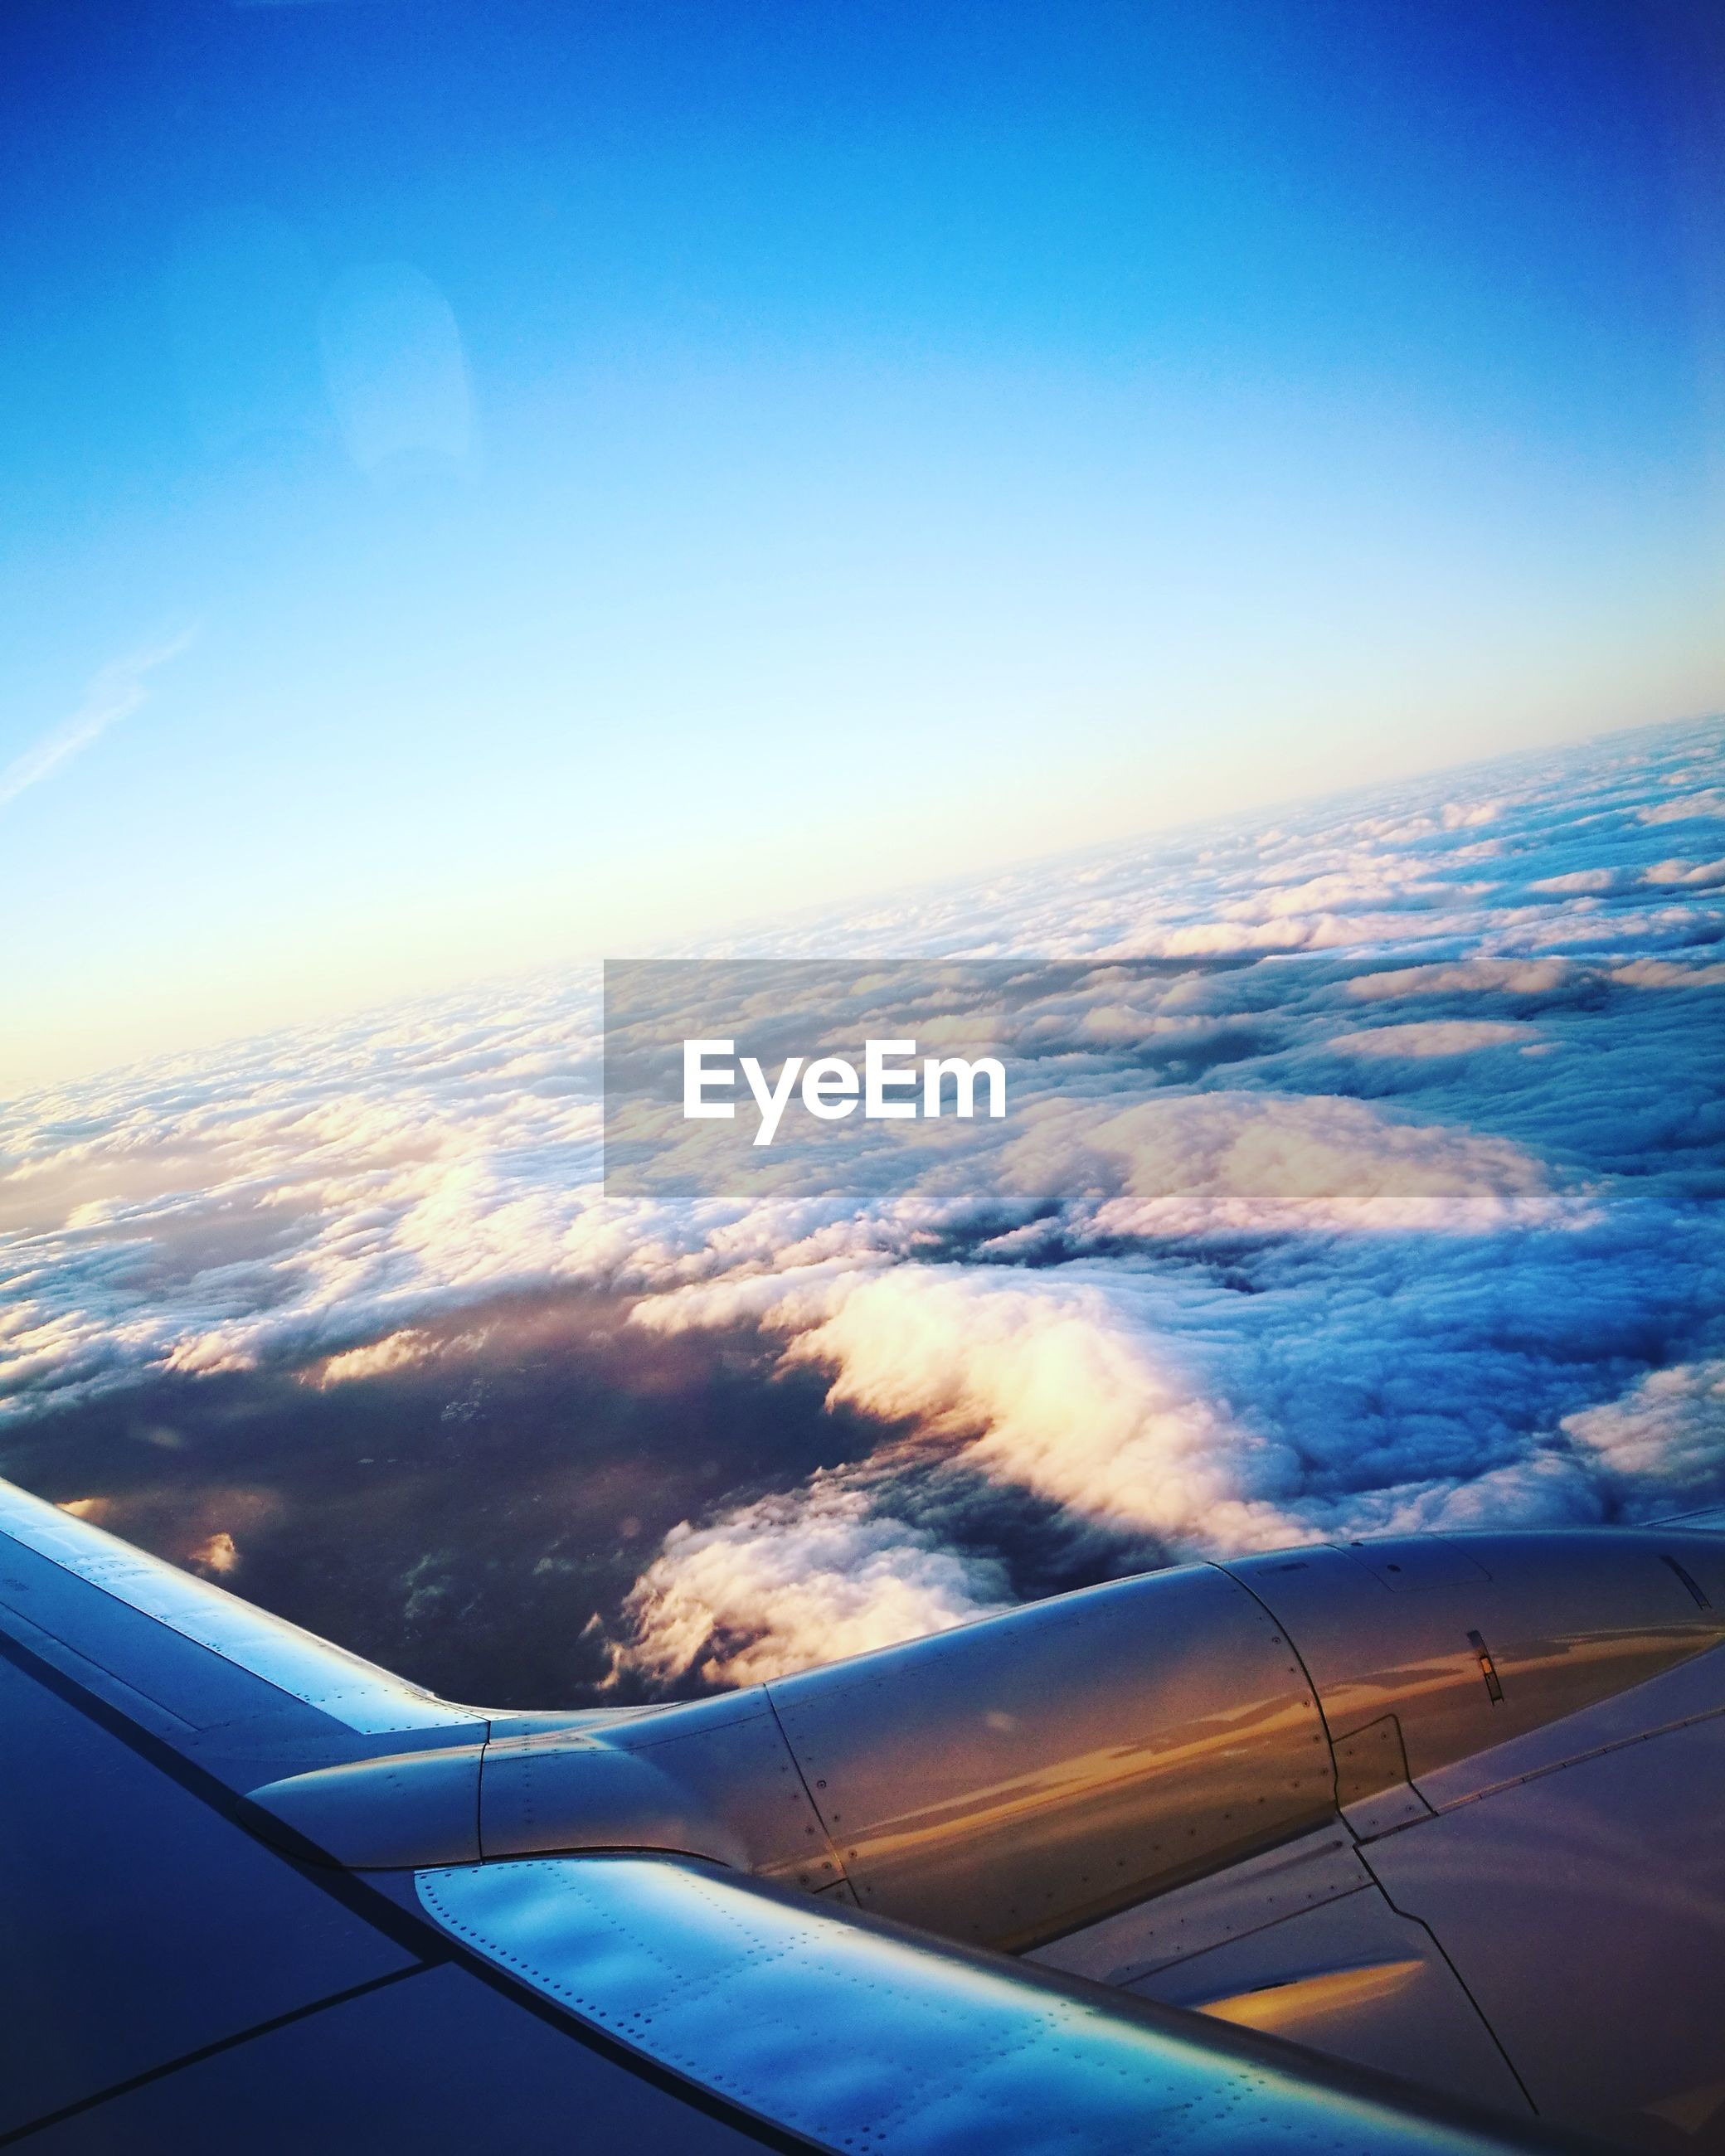 airplane, transportation, air vehicle, journey, aerial view, travel, mode of transport, airplane wing, aircraft wing, flying, mid-air, sky, jet engine, nature, blue, cloud - sky, no people, tranquil scene, scenics, day, beauty in nature, outdoors, sky only